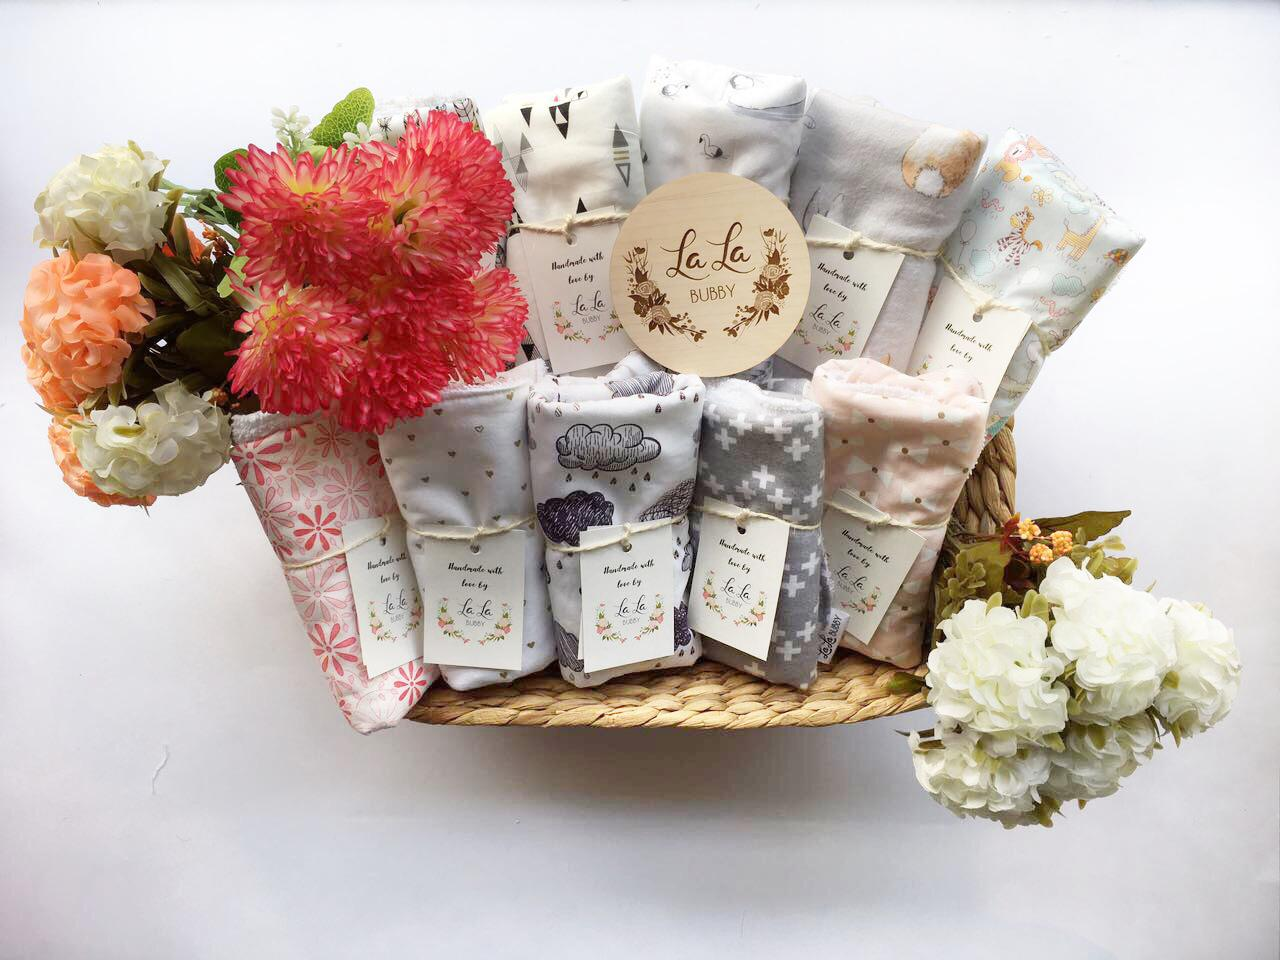 Basket of burp cloths